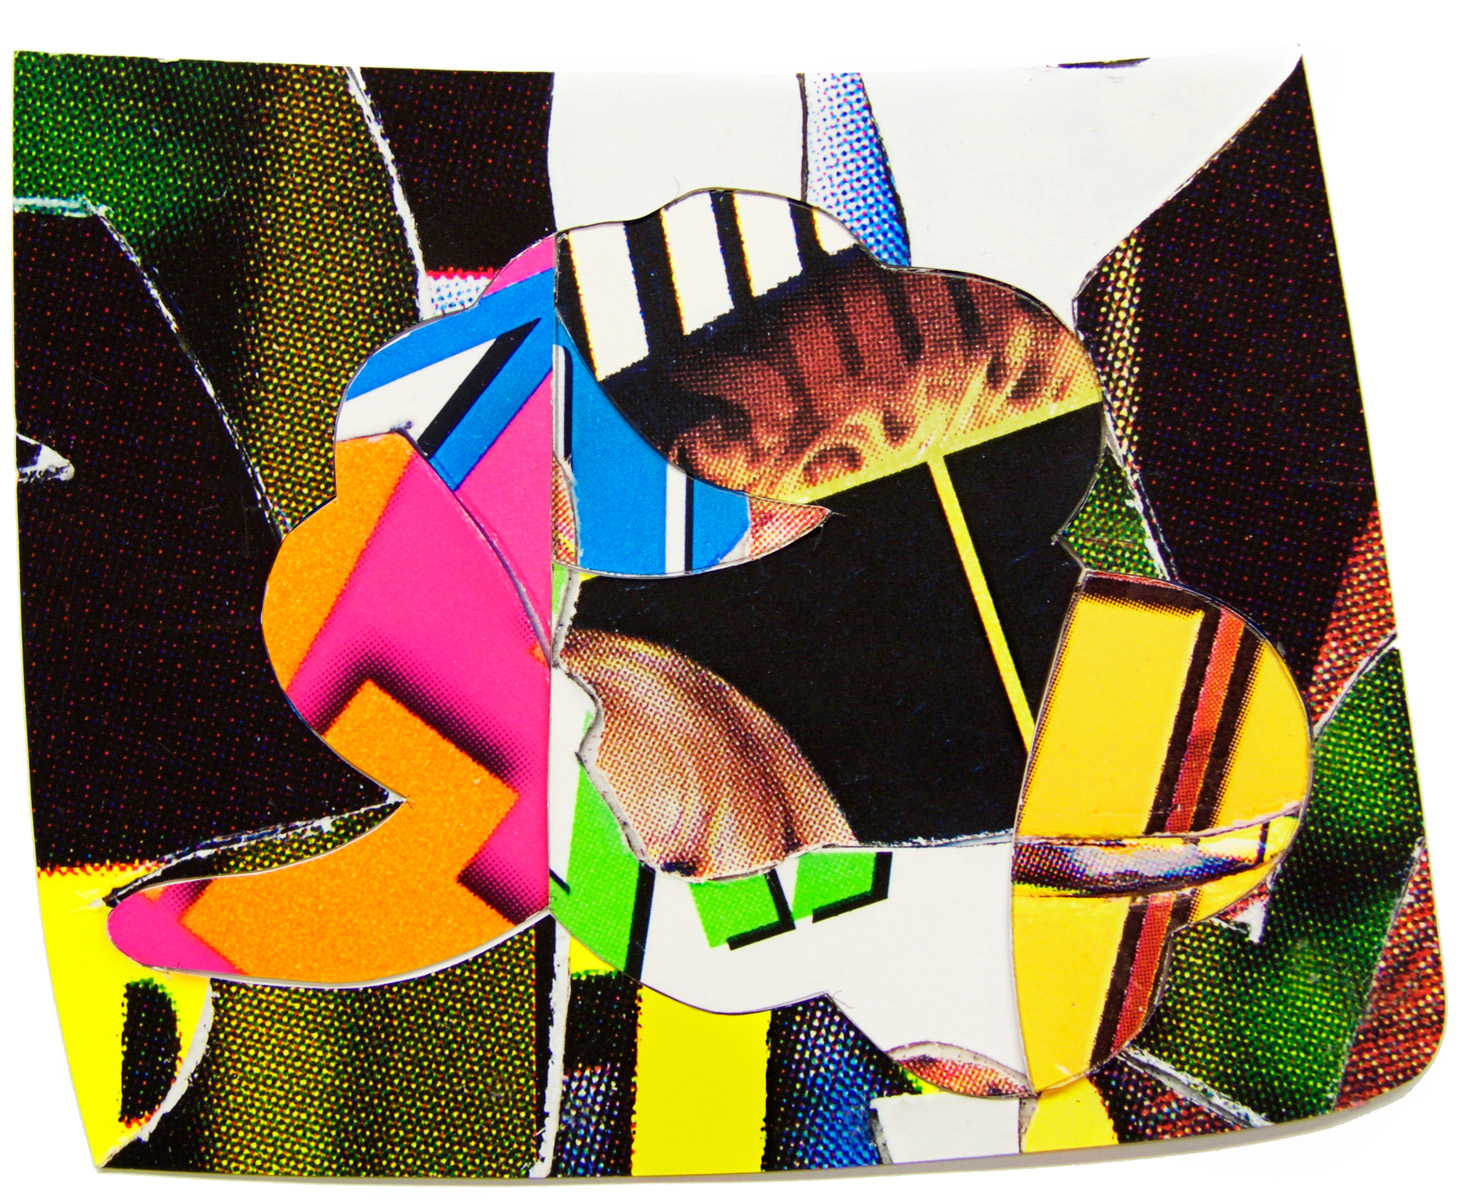 ROBERT BRINKER STUDIES Cut paper collage